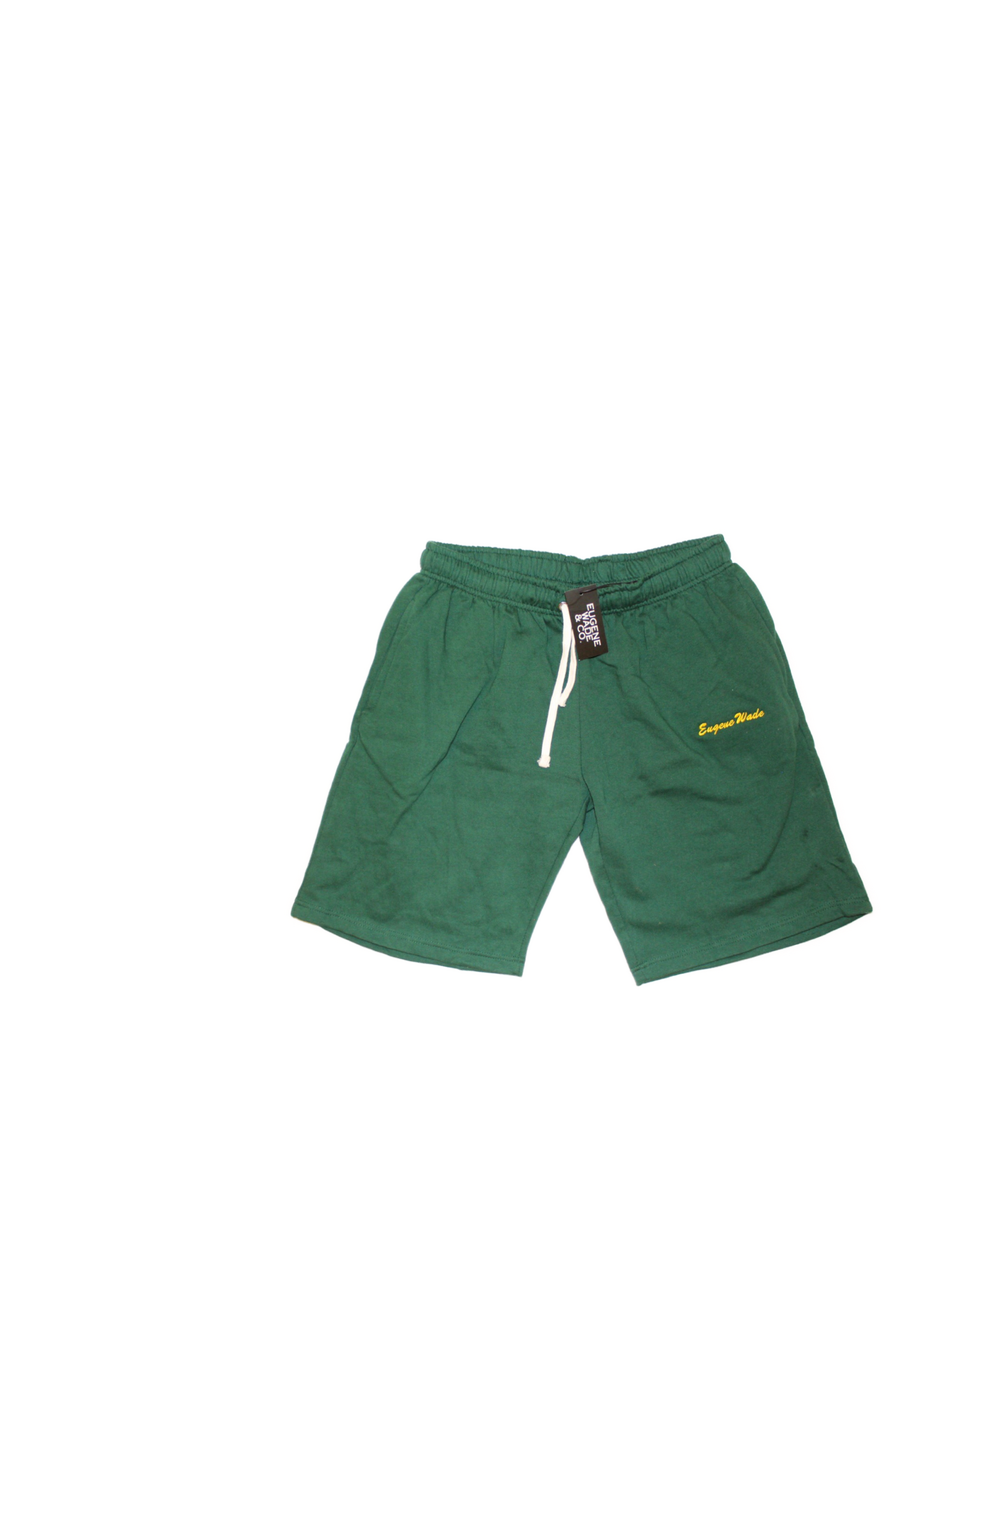 GREEN SHORTS (LIMITED)